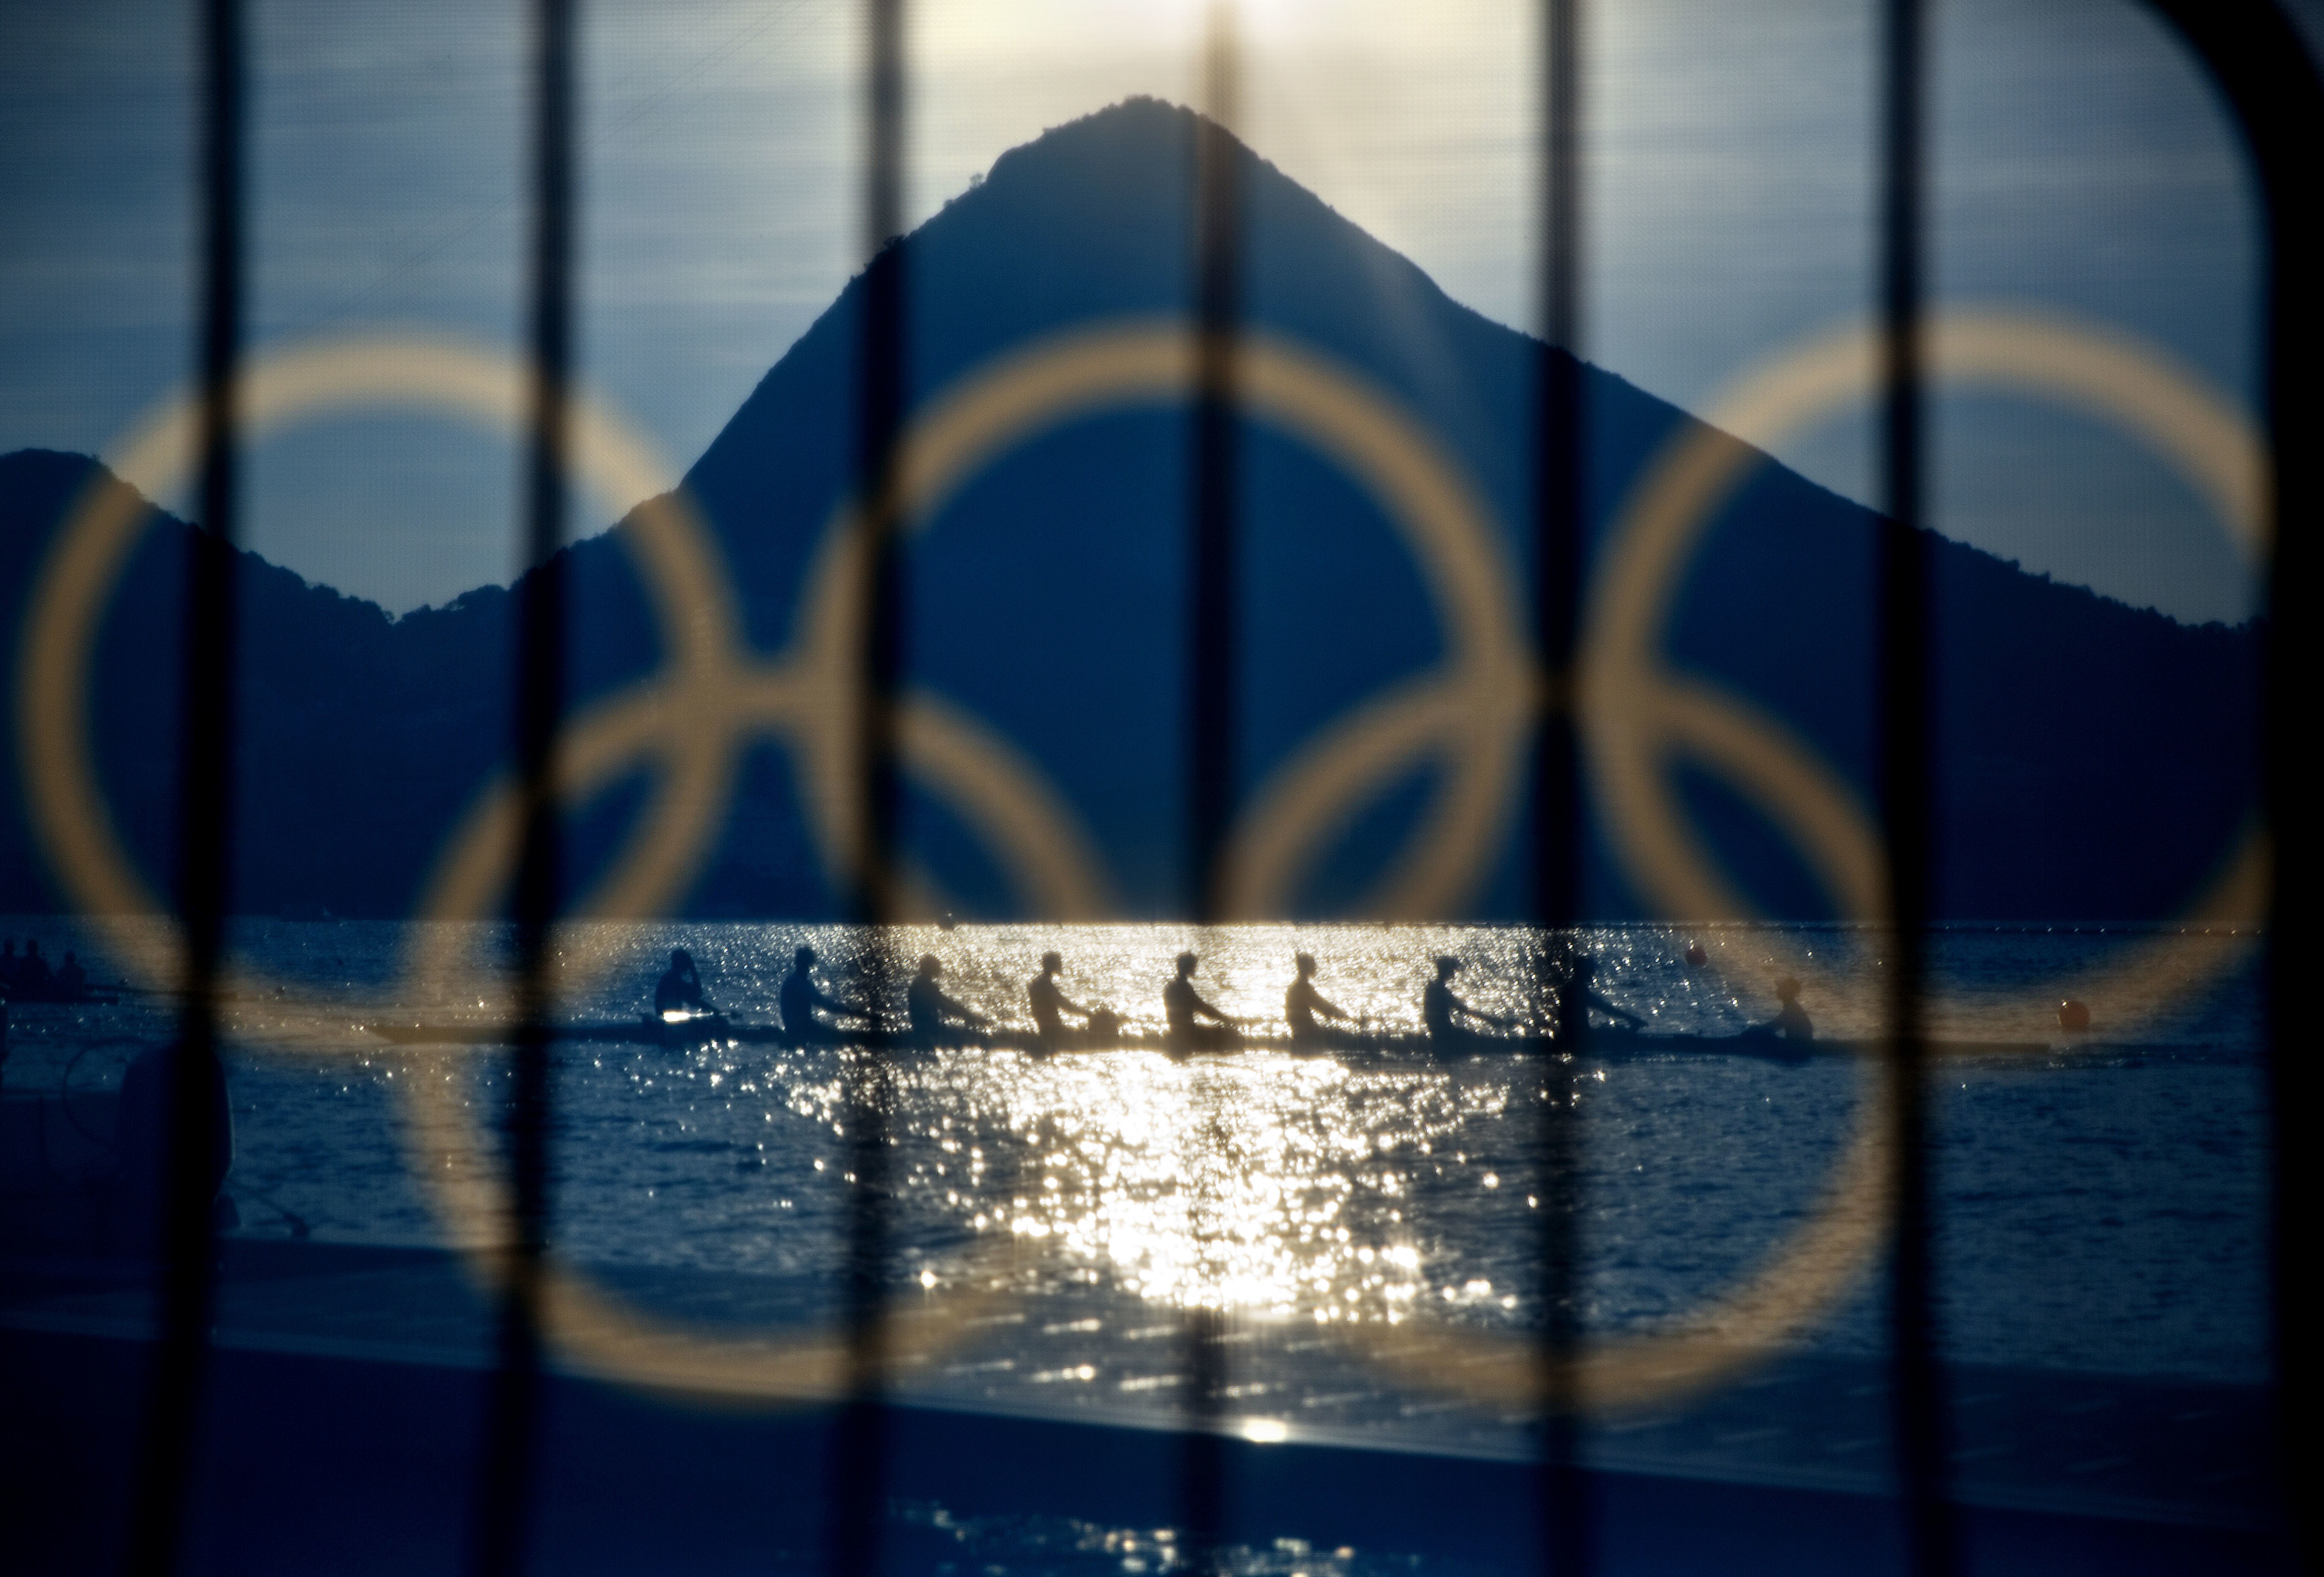 FILE - In this Aug. 7, 2016 file photo, rowers are seen through a screen decorated with the Olympic rings as they practice at the rowing venue in Lagoa at the 2016 Summer Olympics in Rio de Janeiro, Brazil. The night of Sunday, Aug. 21 will mark the launc